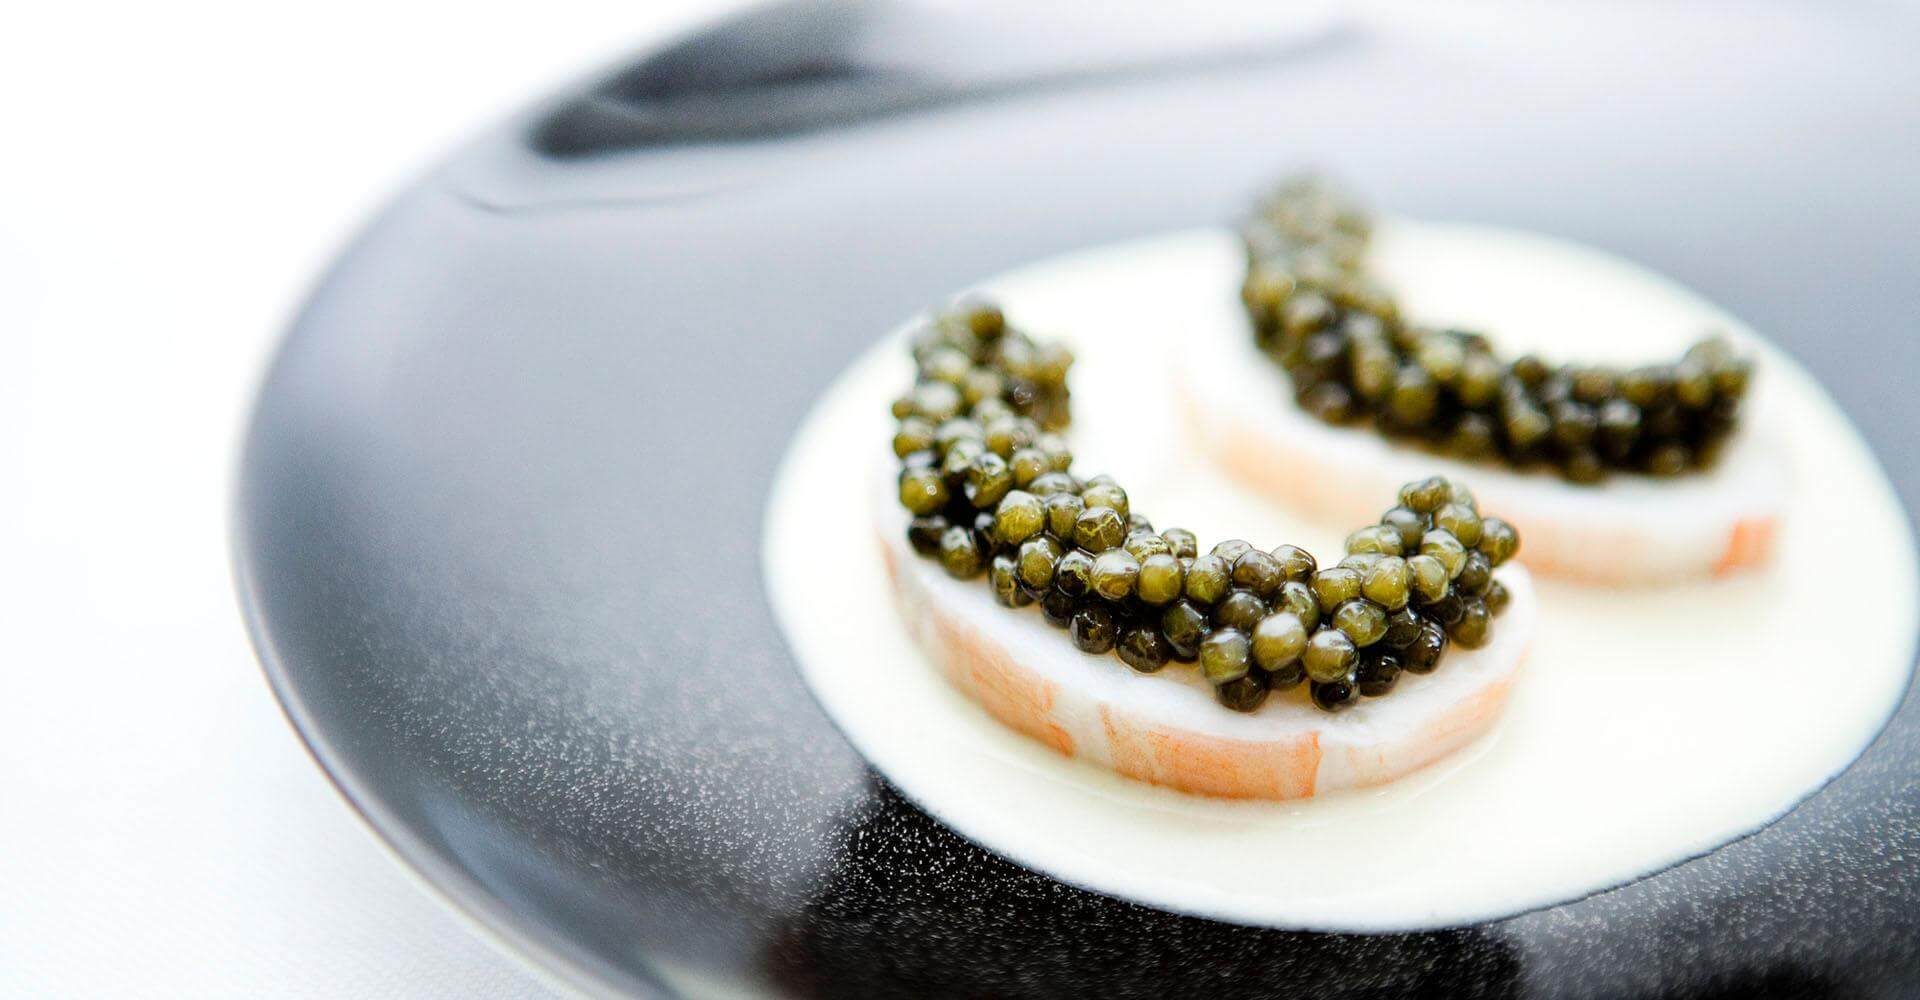 Caviar from Iran